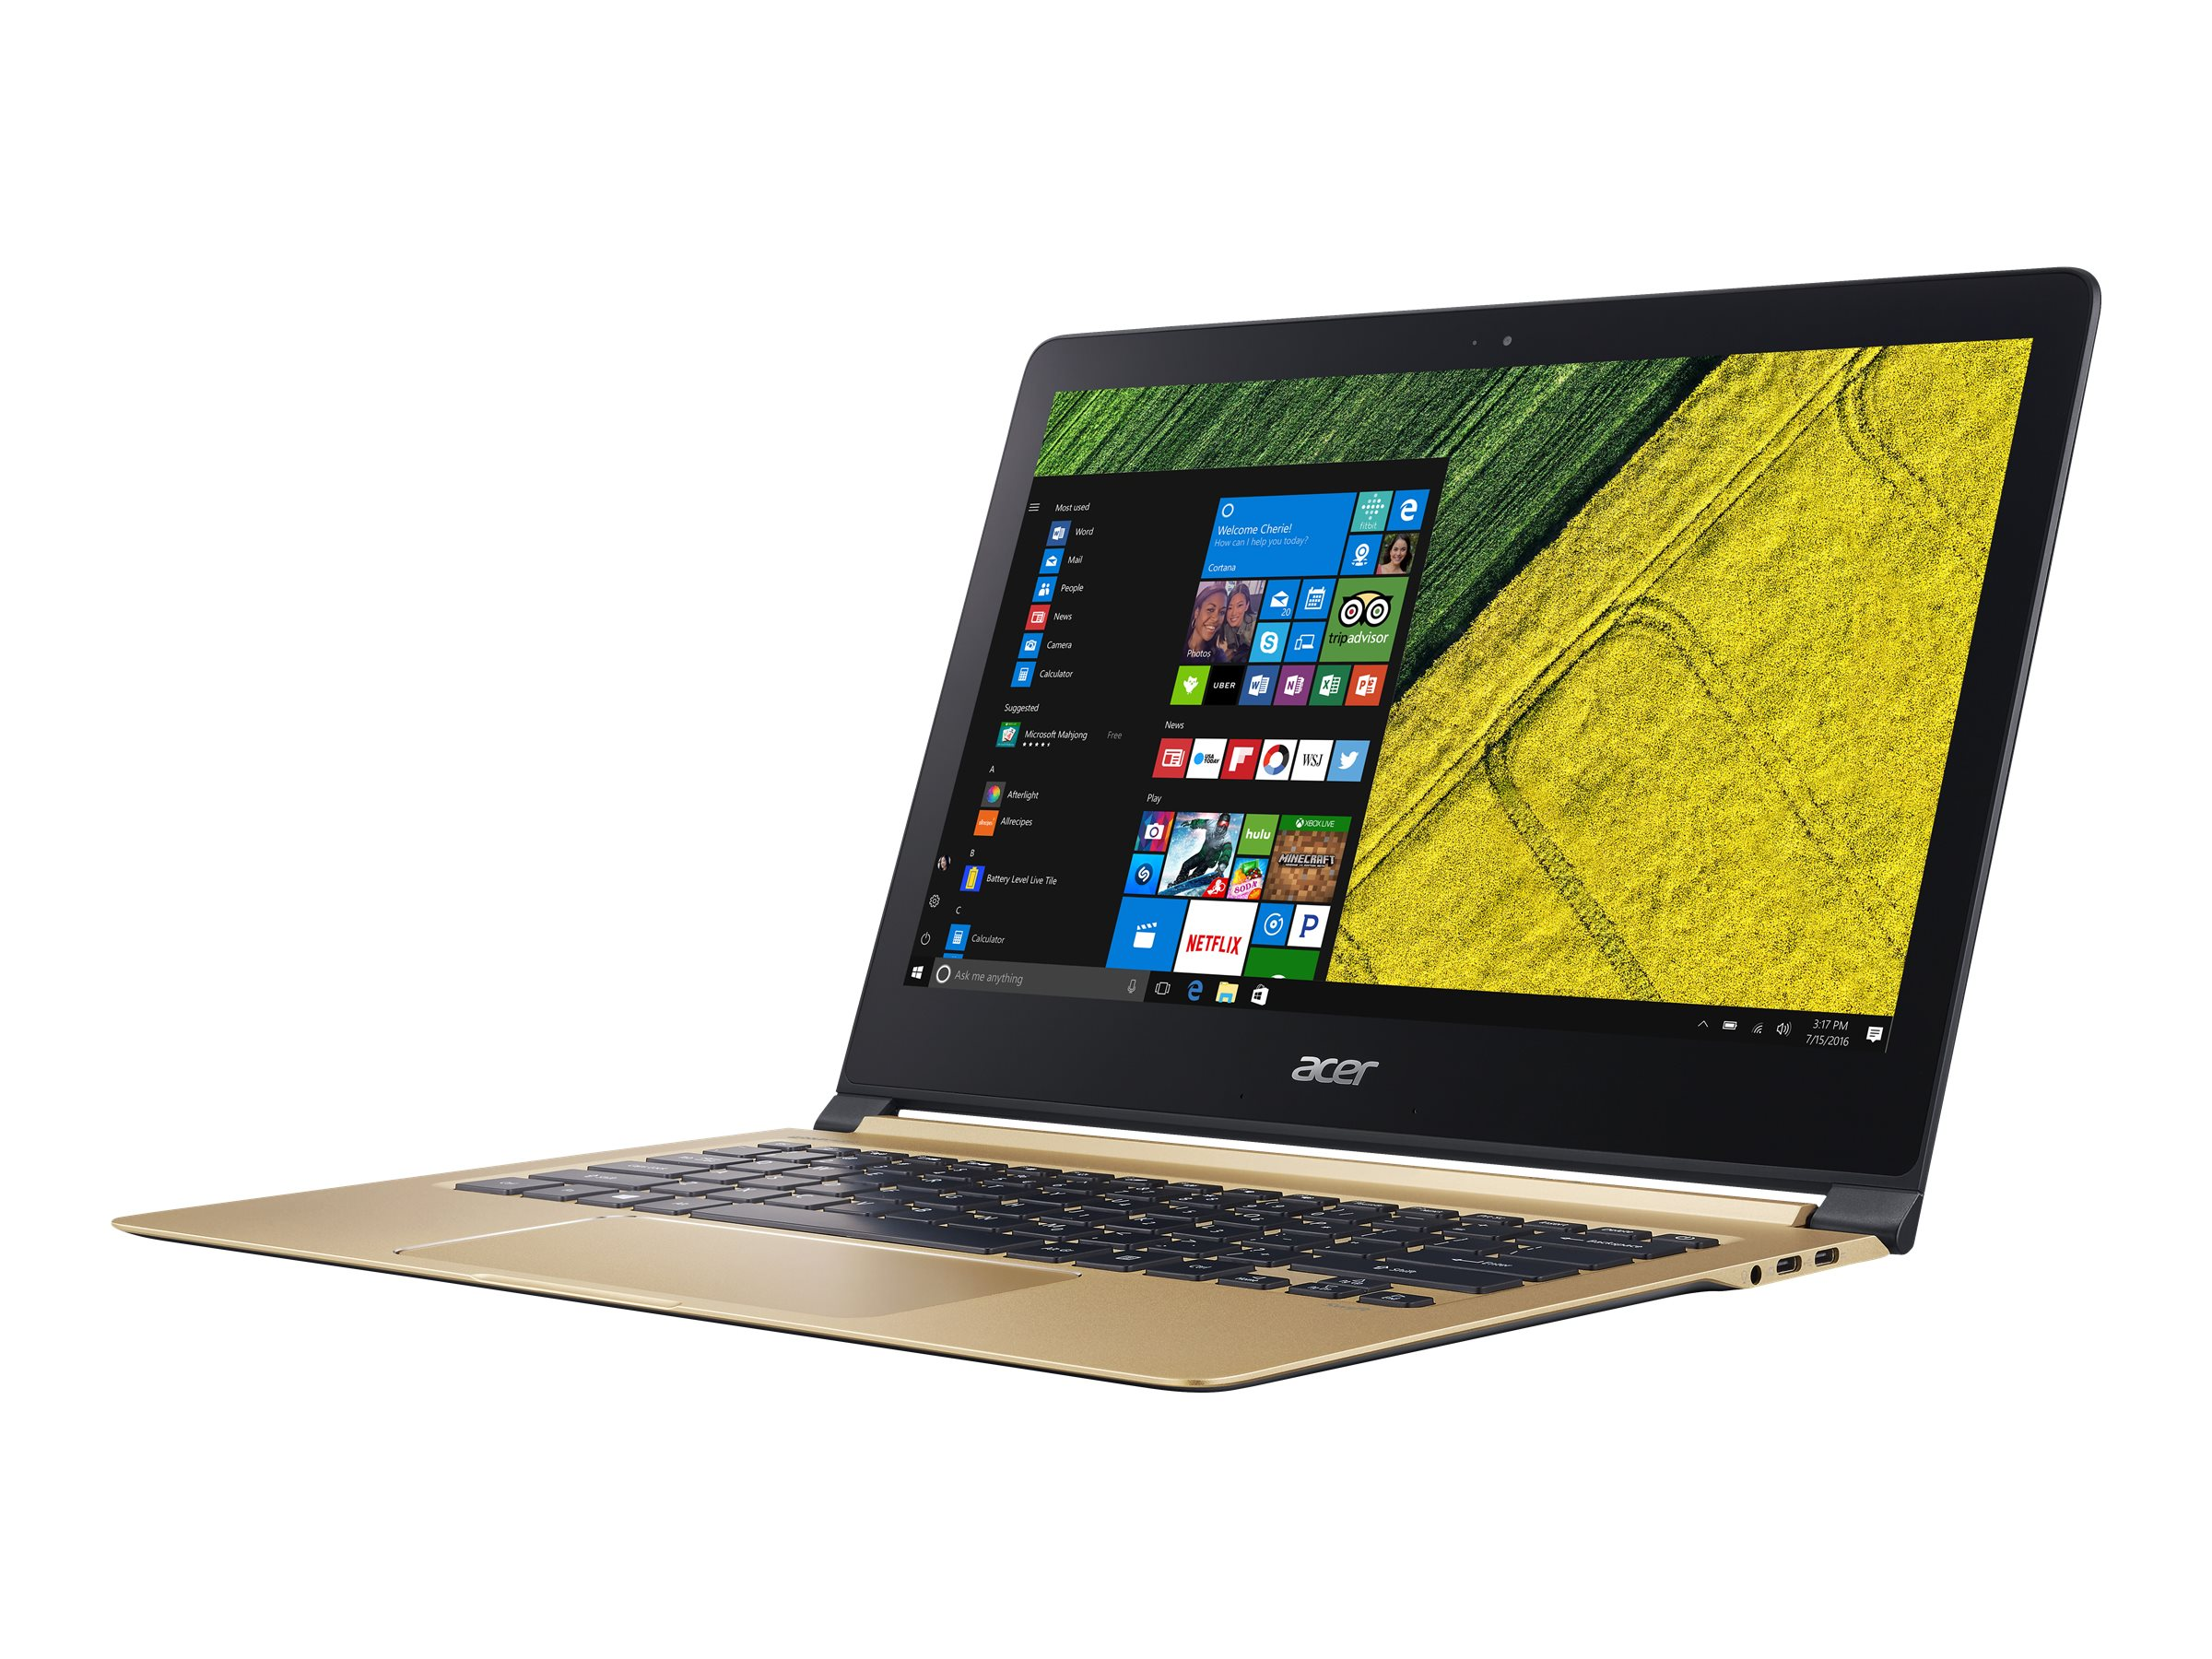 Acer Swift 7 SF713-51-M6EZ - Core i5 7Y54 / 1.2 GHz - Win 10 Pro 64-Bit - 8 GB RAM - 256 GB SSD - 33.8 cm (13.3